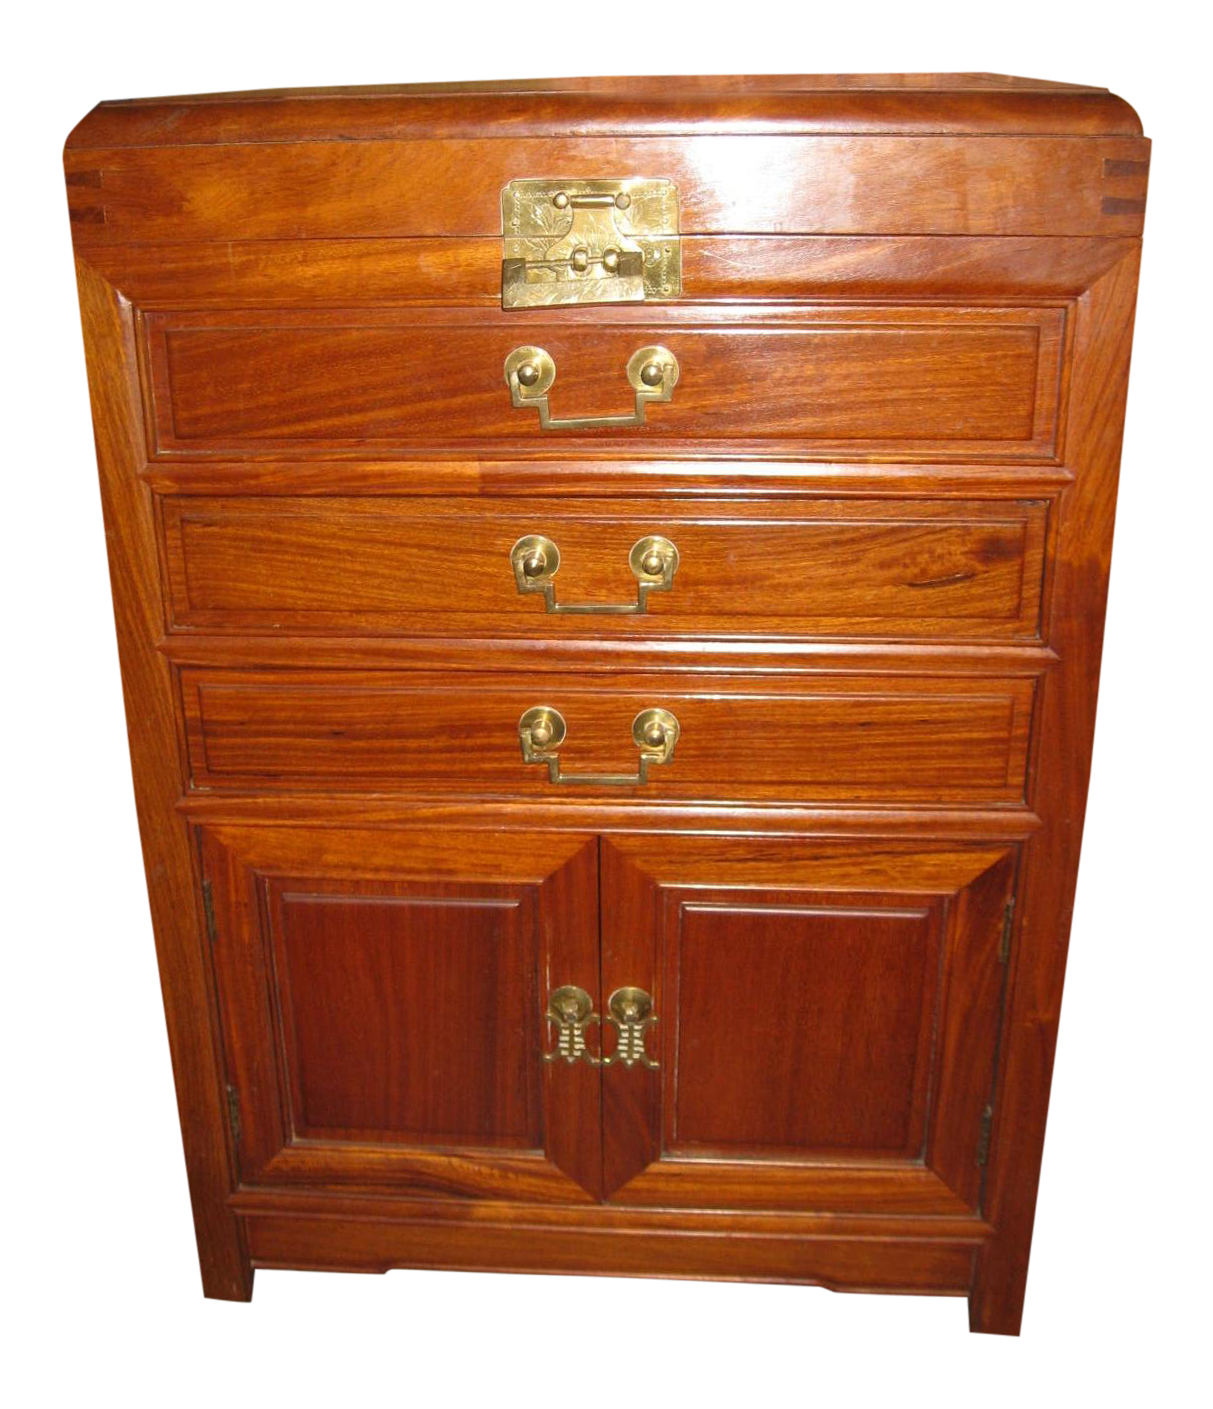 Vintage apothecary cabinet for sale - 1960s Mid Century Modern Rosewood Silverware Chest